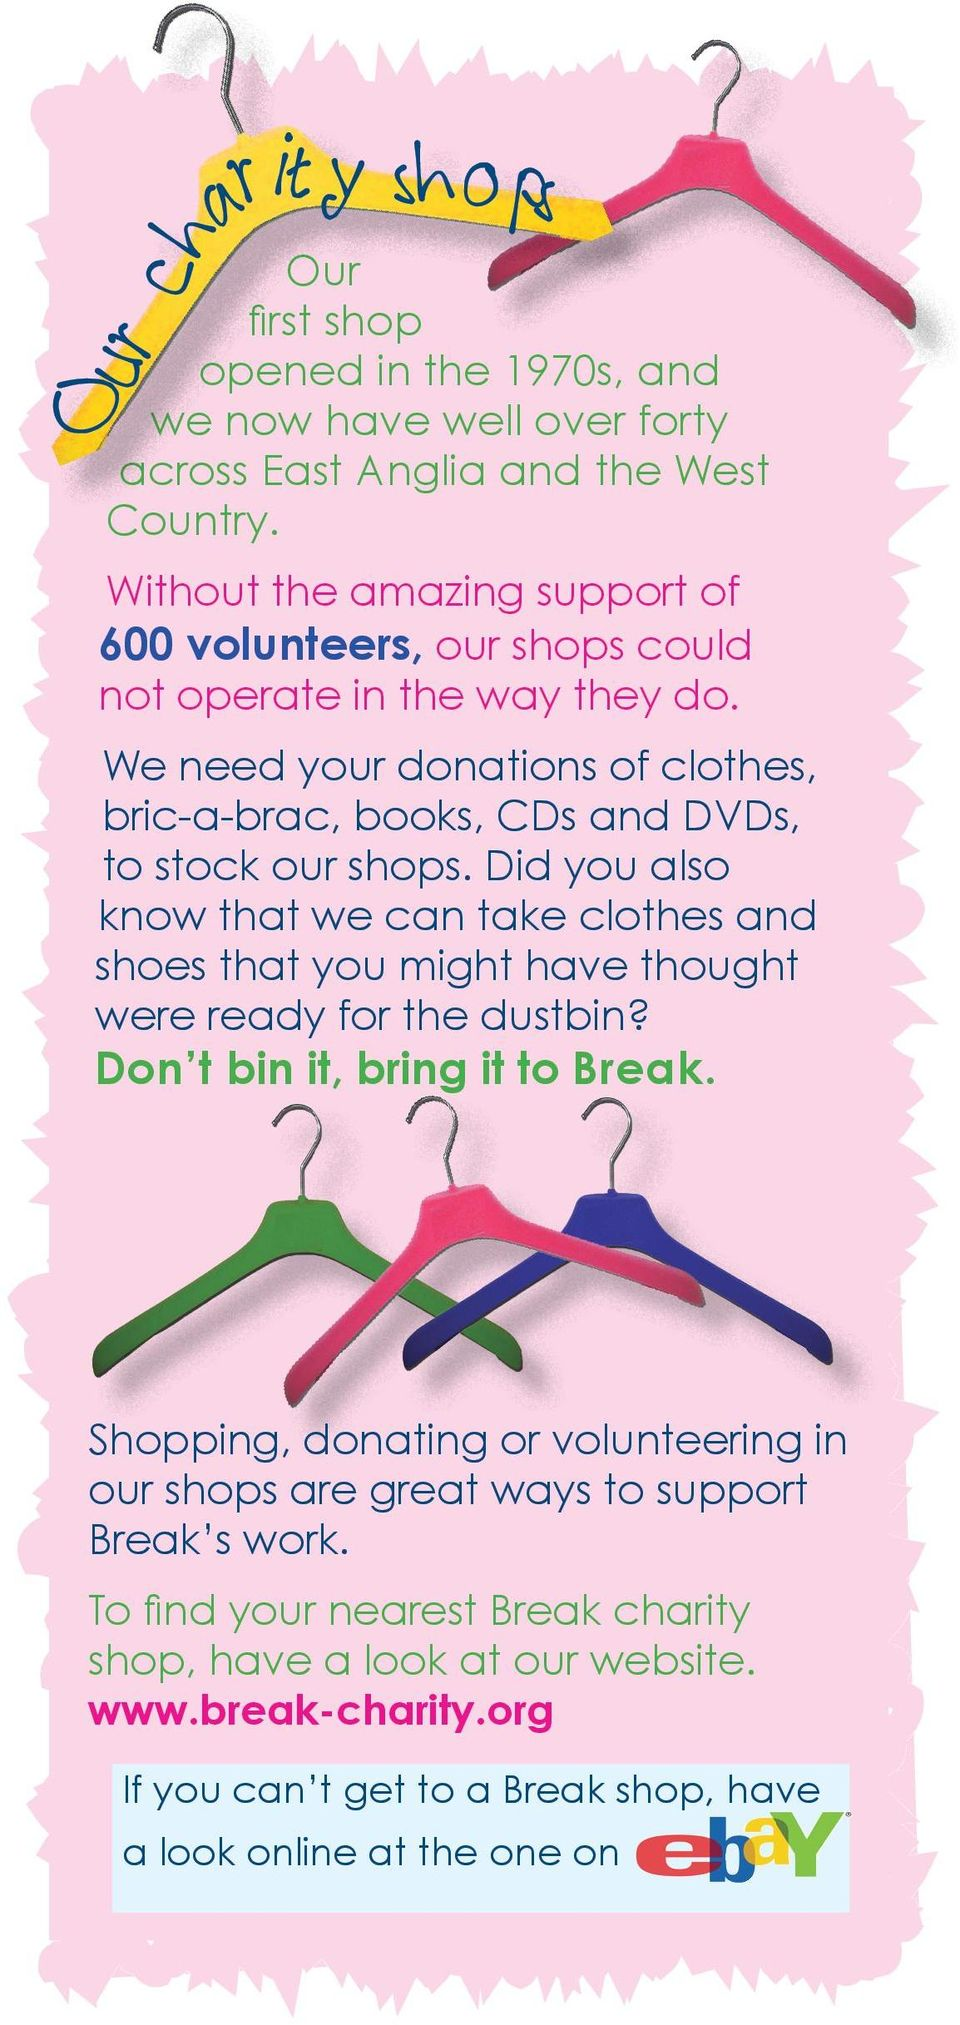 We need your donations of clothes, bric-a-brac, books, CDs and DVDs, to stock our shops.